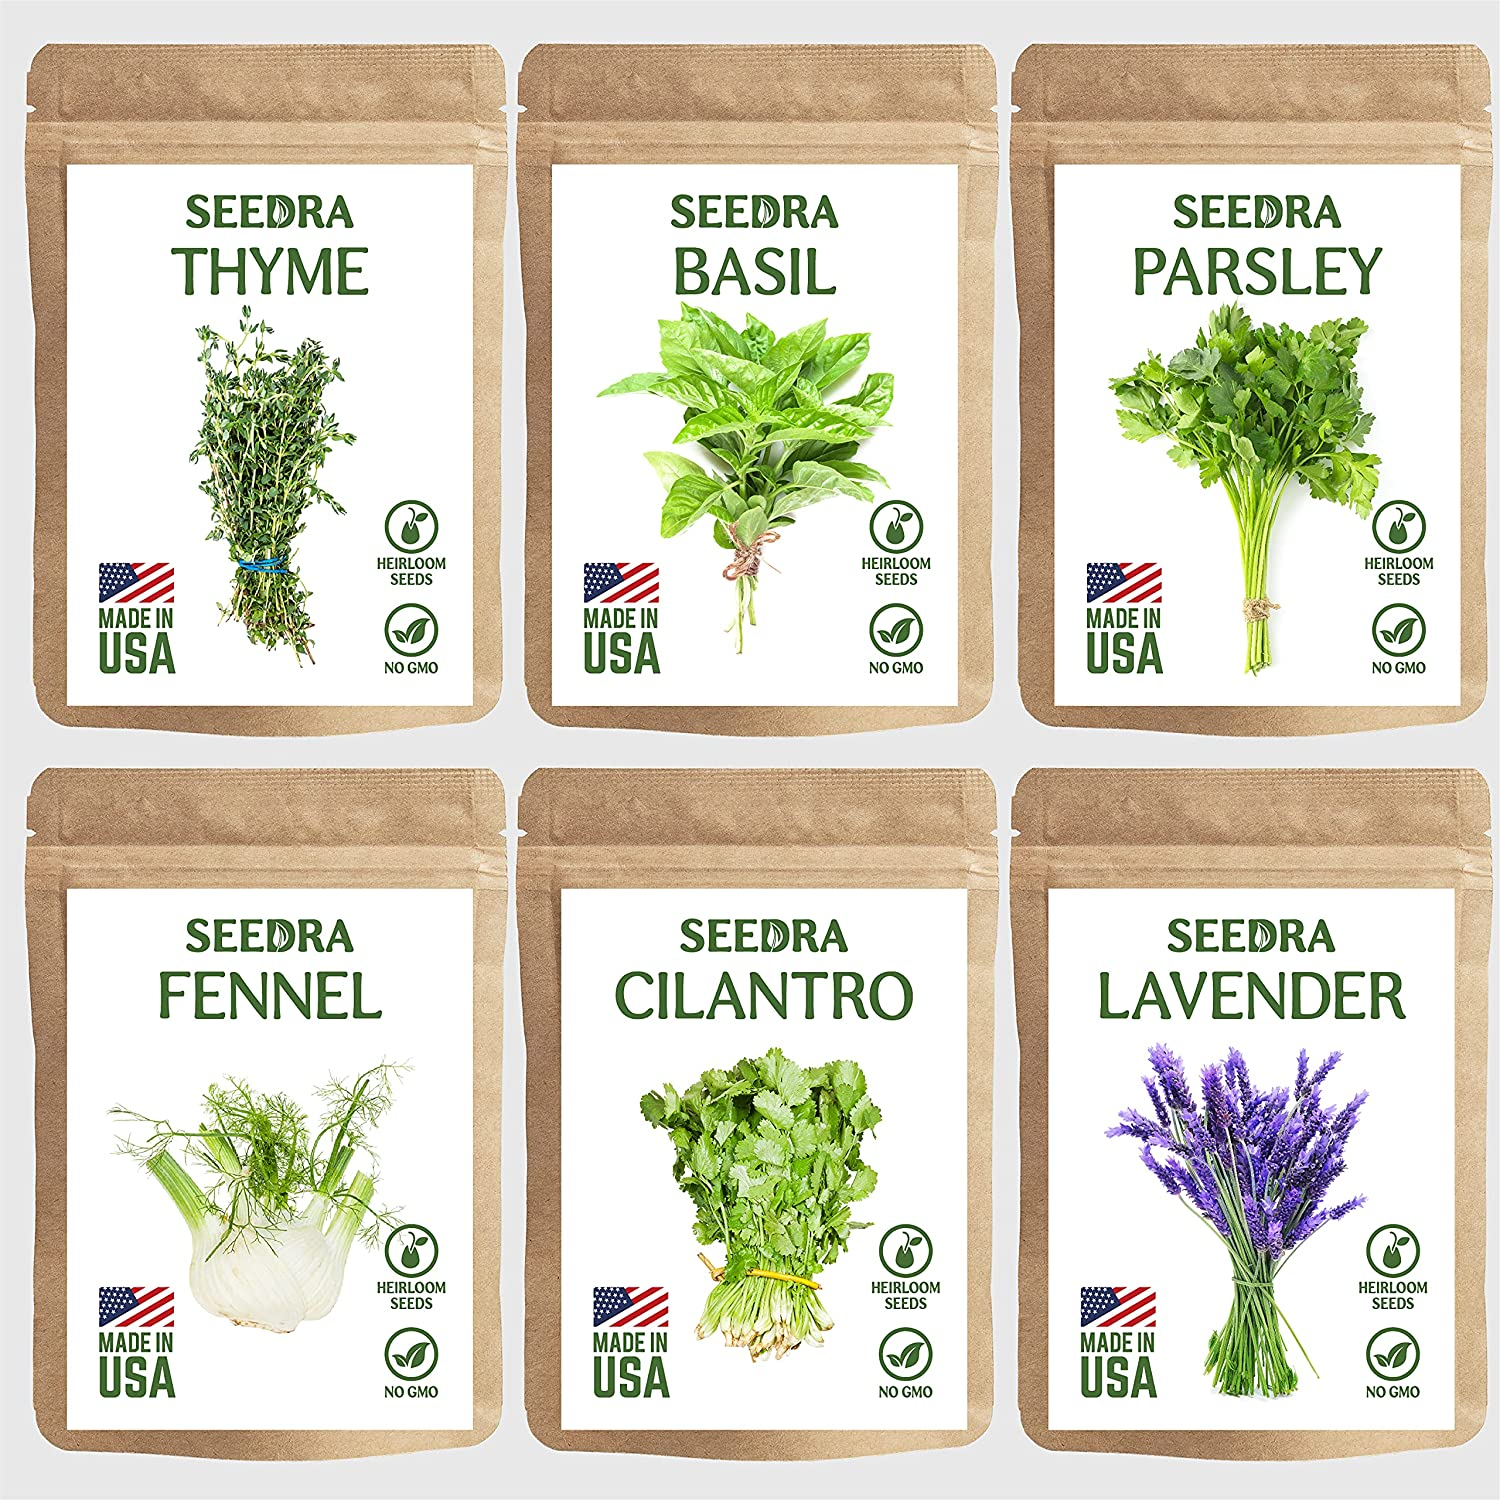 SEEDRA 6 Herb Seeds Variety Pack Indoor and Outdoor Planting - 3000+ Seeds - Non GMO and Heirloom - Basil, Thyme, Lavender, Parsley, Fennel, Cilantro